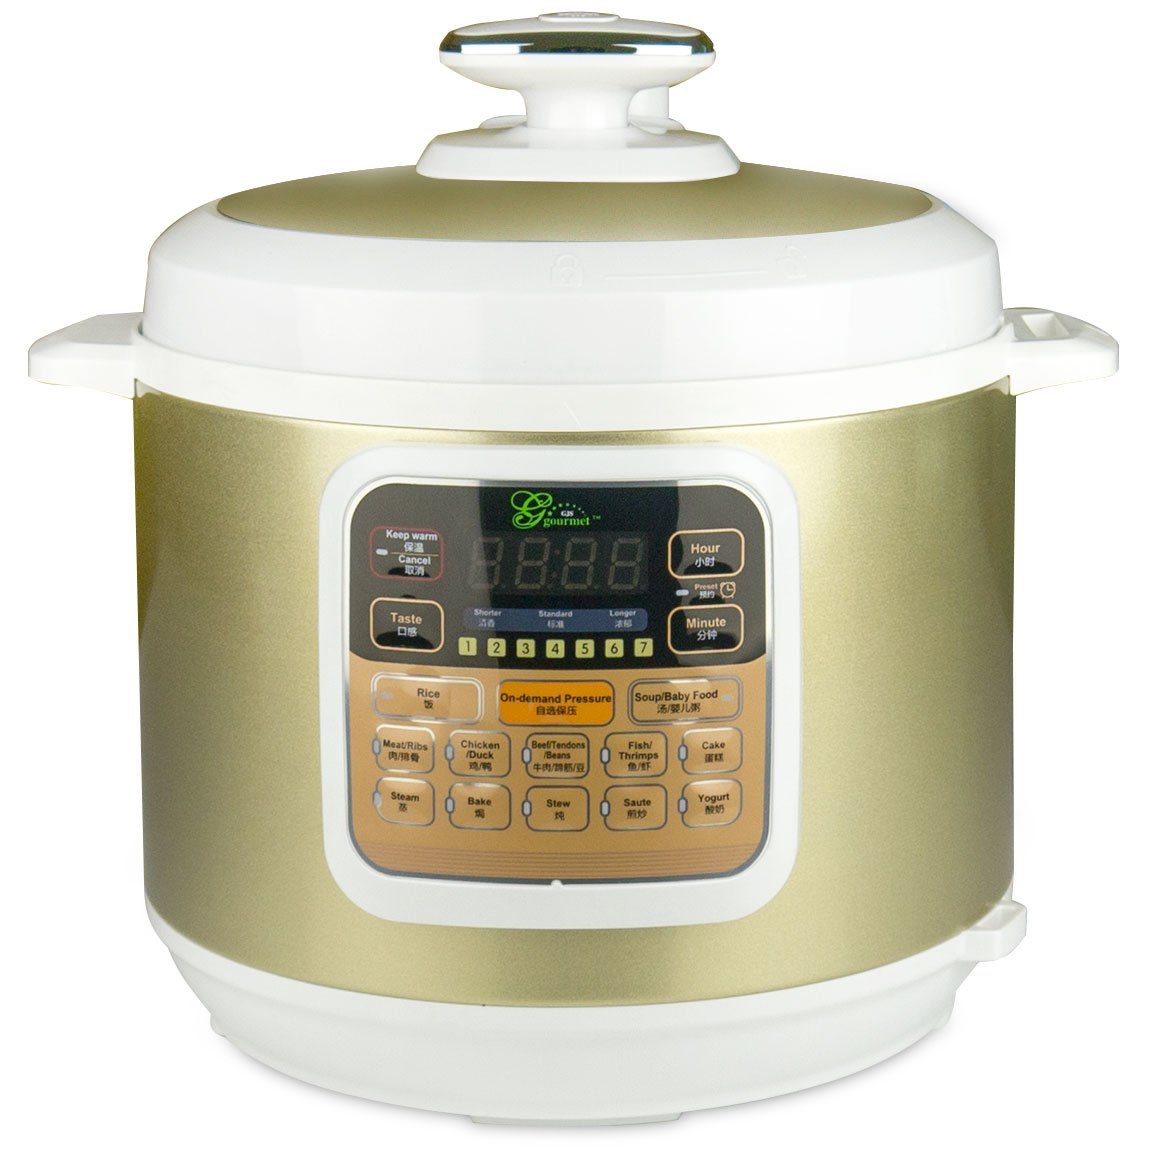 MIDEA Gourmet 7-in-1 Programable 6L Automatic Electric Pressure Cooker with Stainless Steel Inner Pot. Model BT100-6L - Bouns Free Pressure Ring